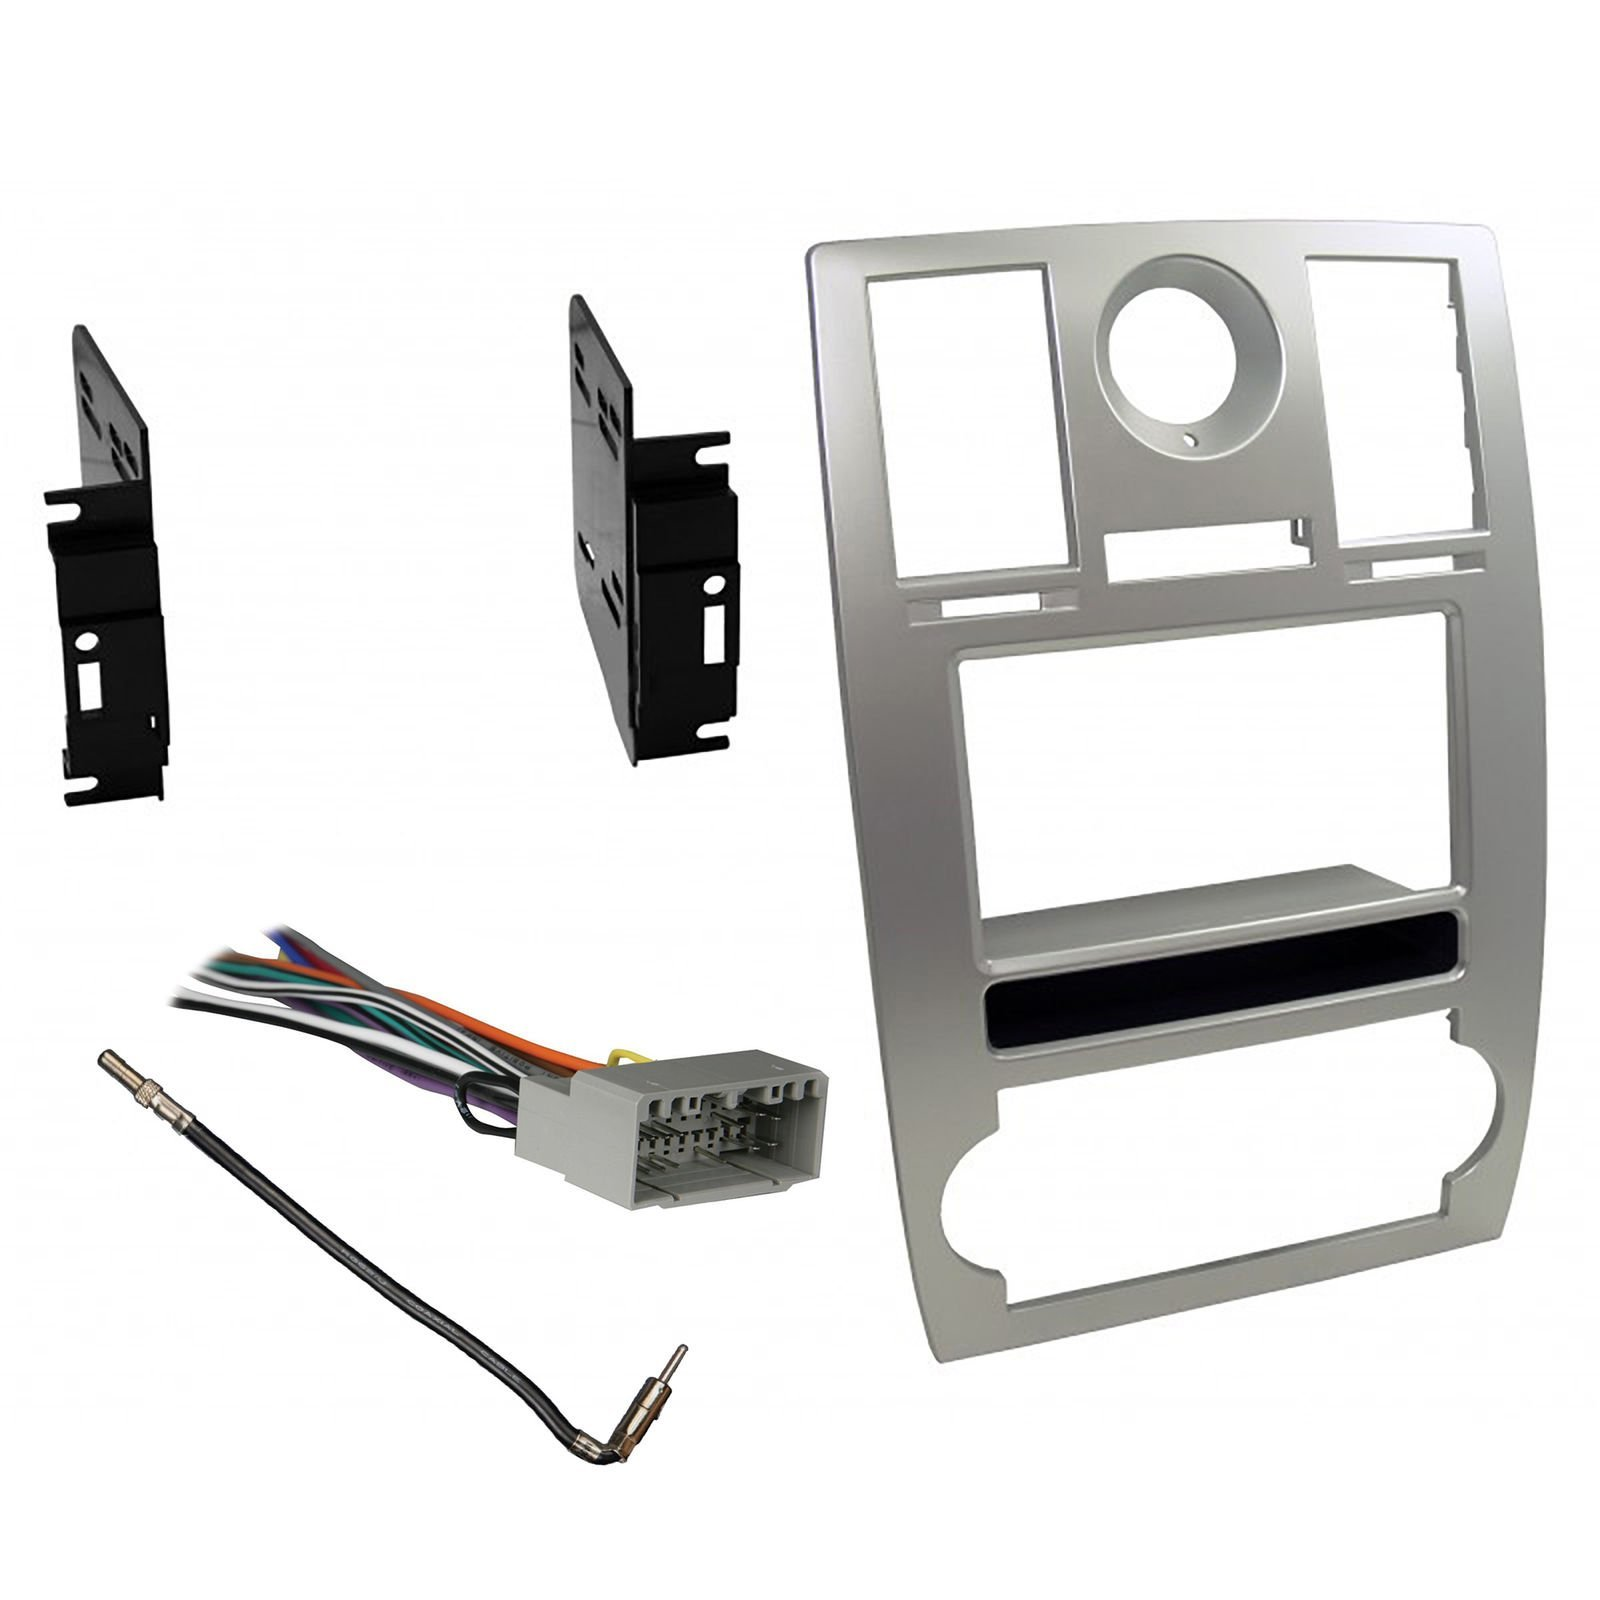 Deals R Us Car Radio Stereo CD Player Dash Install Mounting Trim Bezel Panel Kit Mount by American Terminal